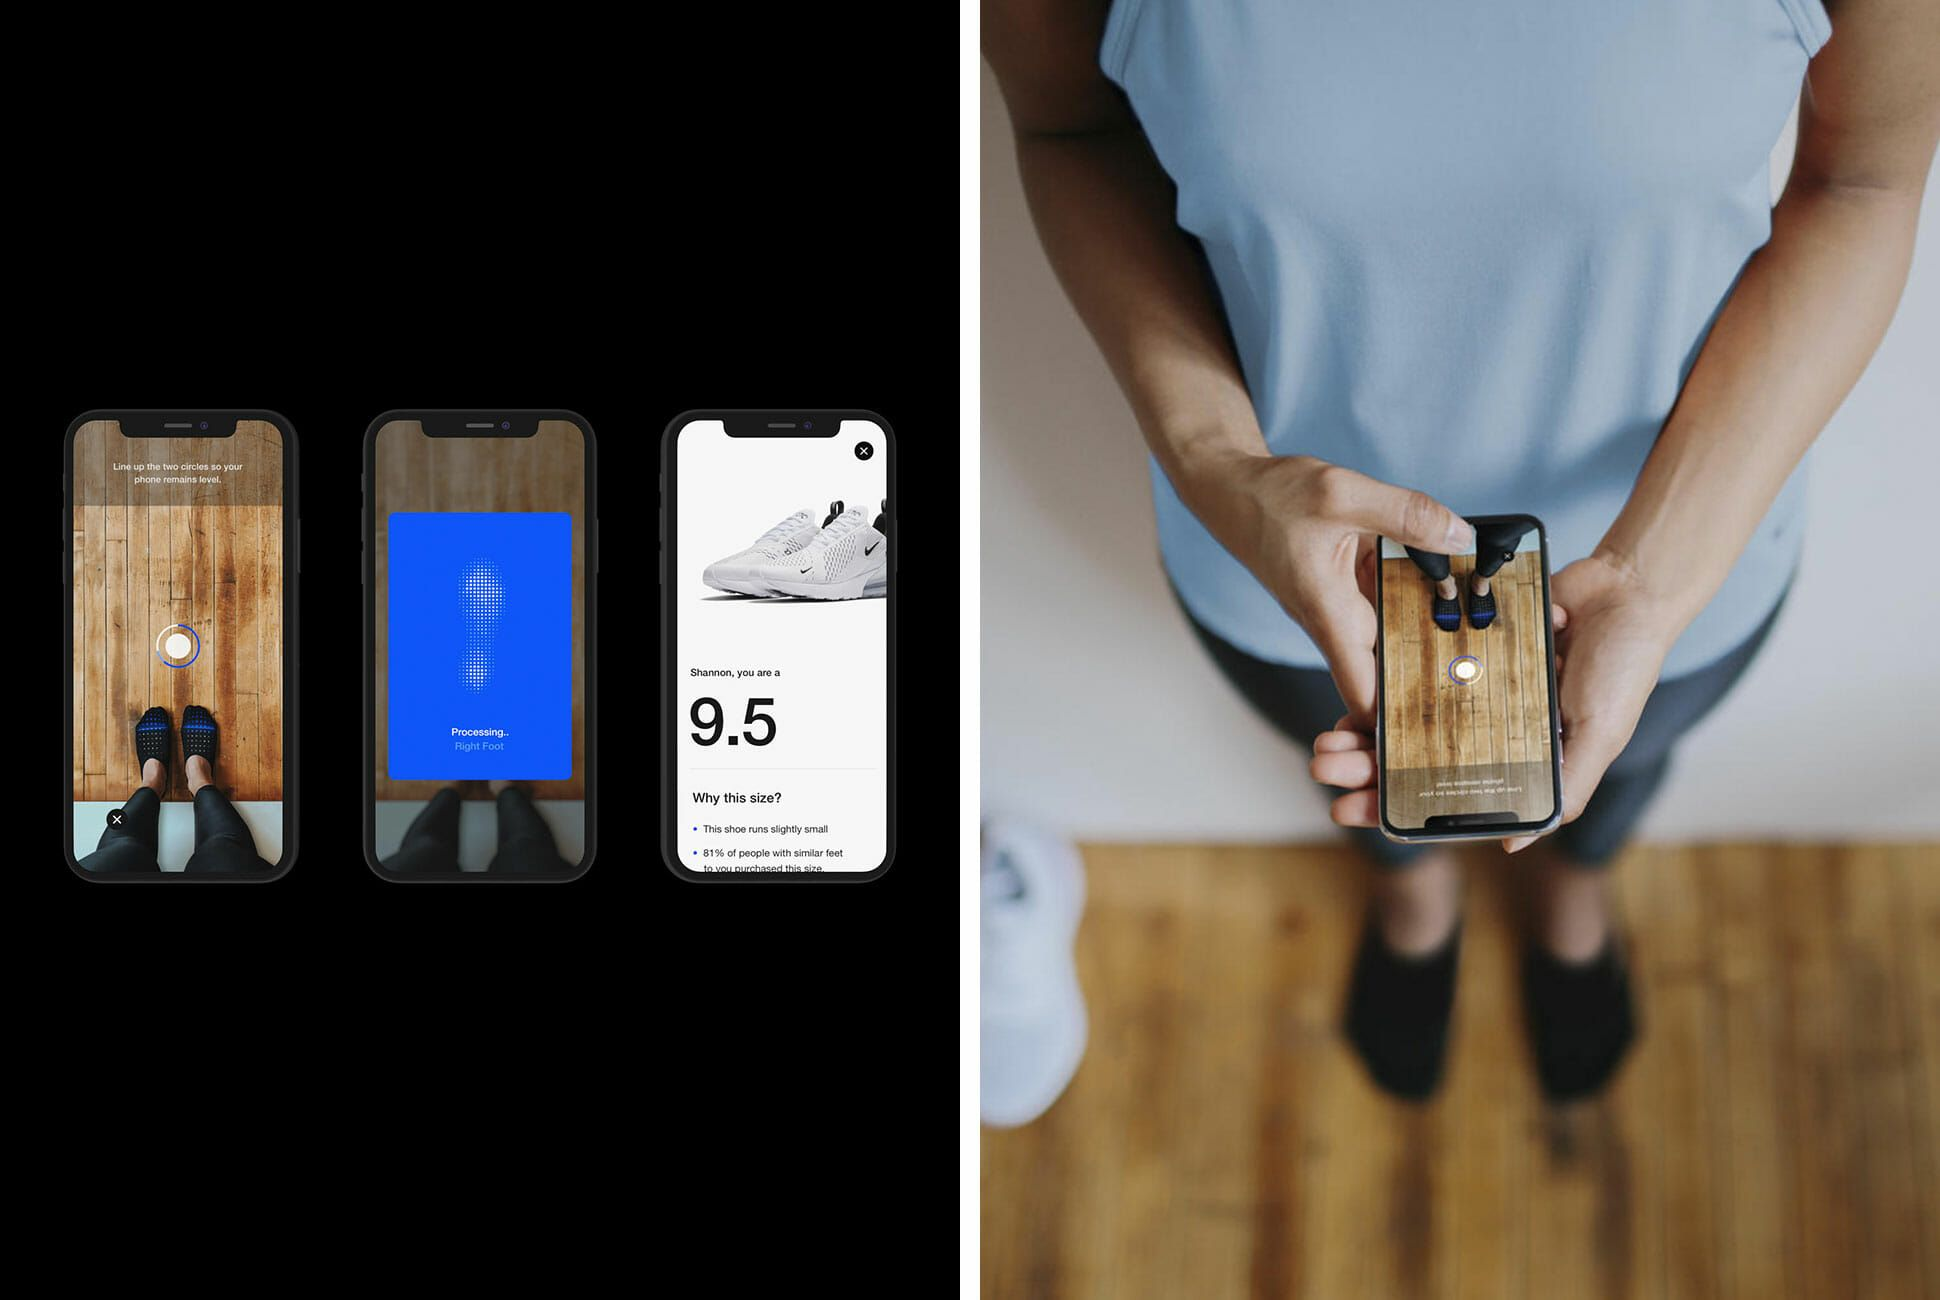 Nike Fit is The App That Will End You